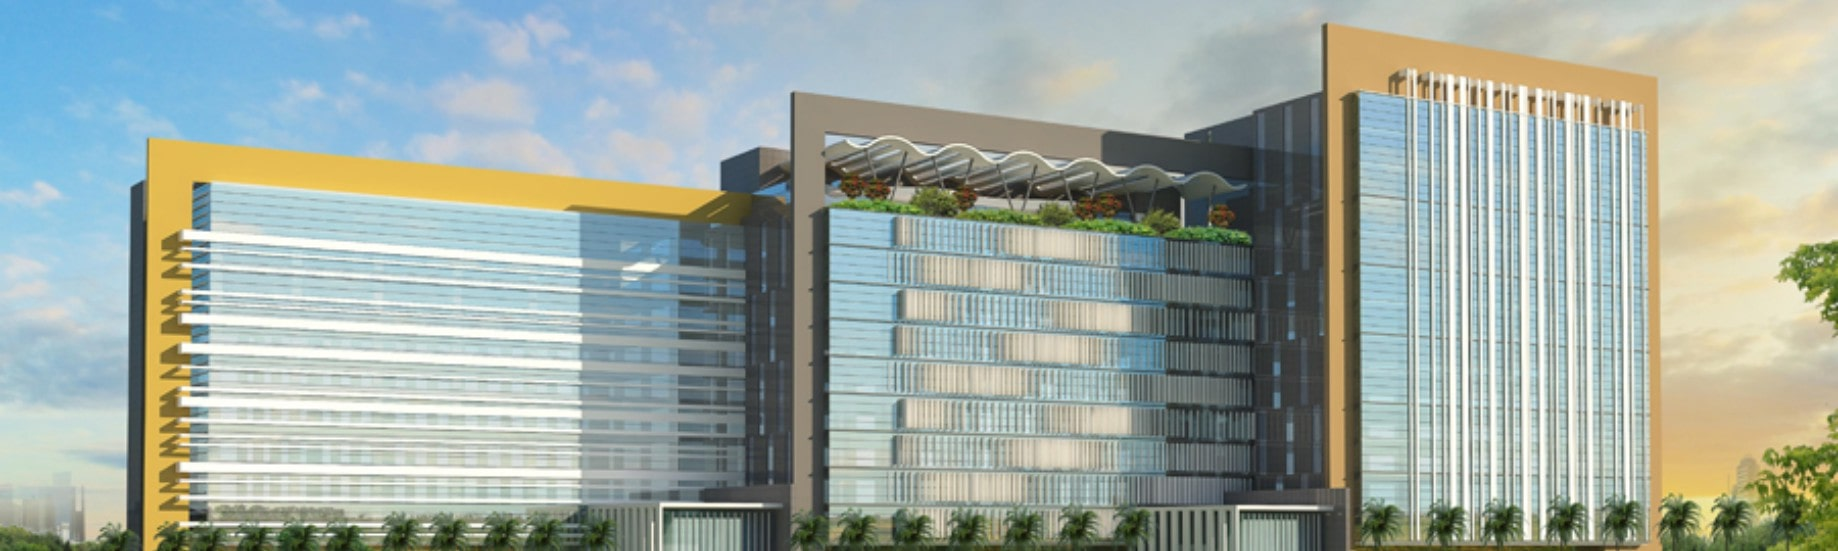 Office Space for Rent in Noida One, Sector-62, Noida